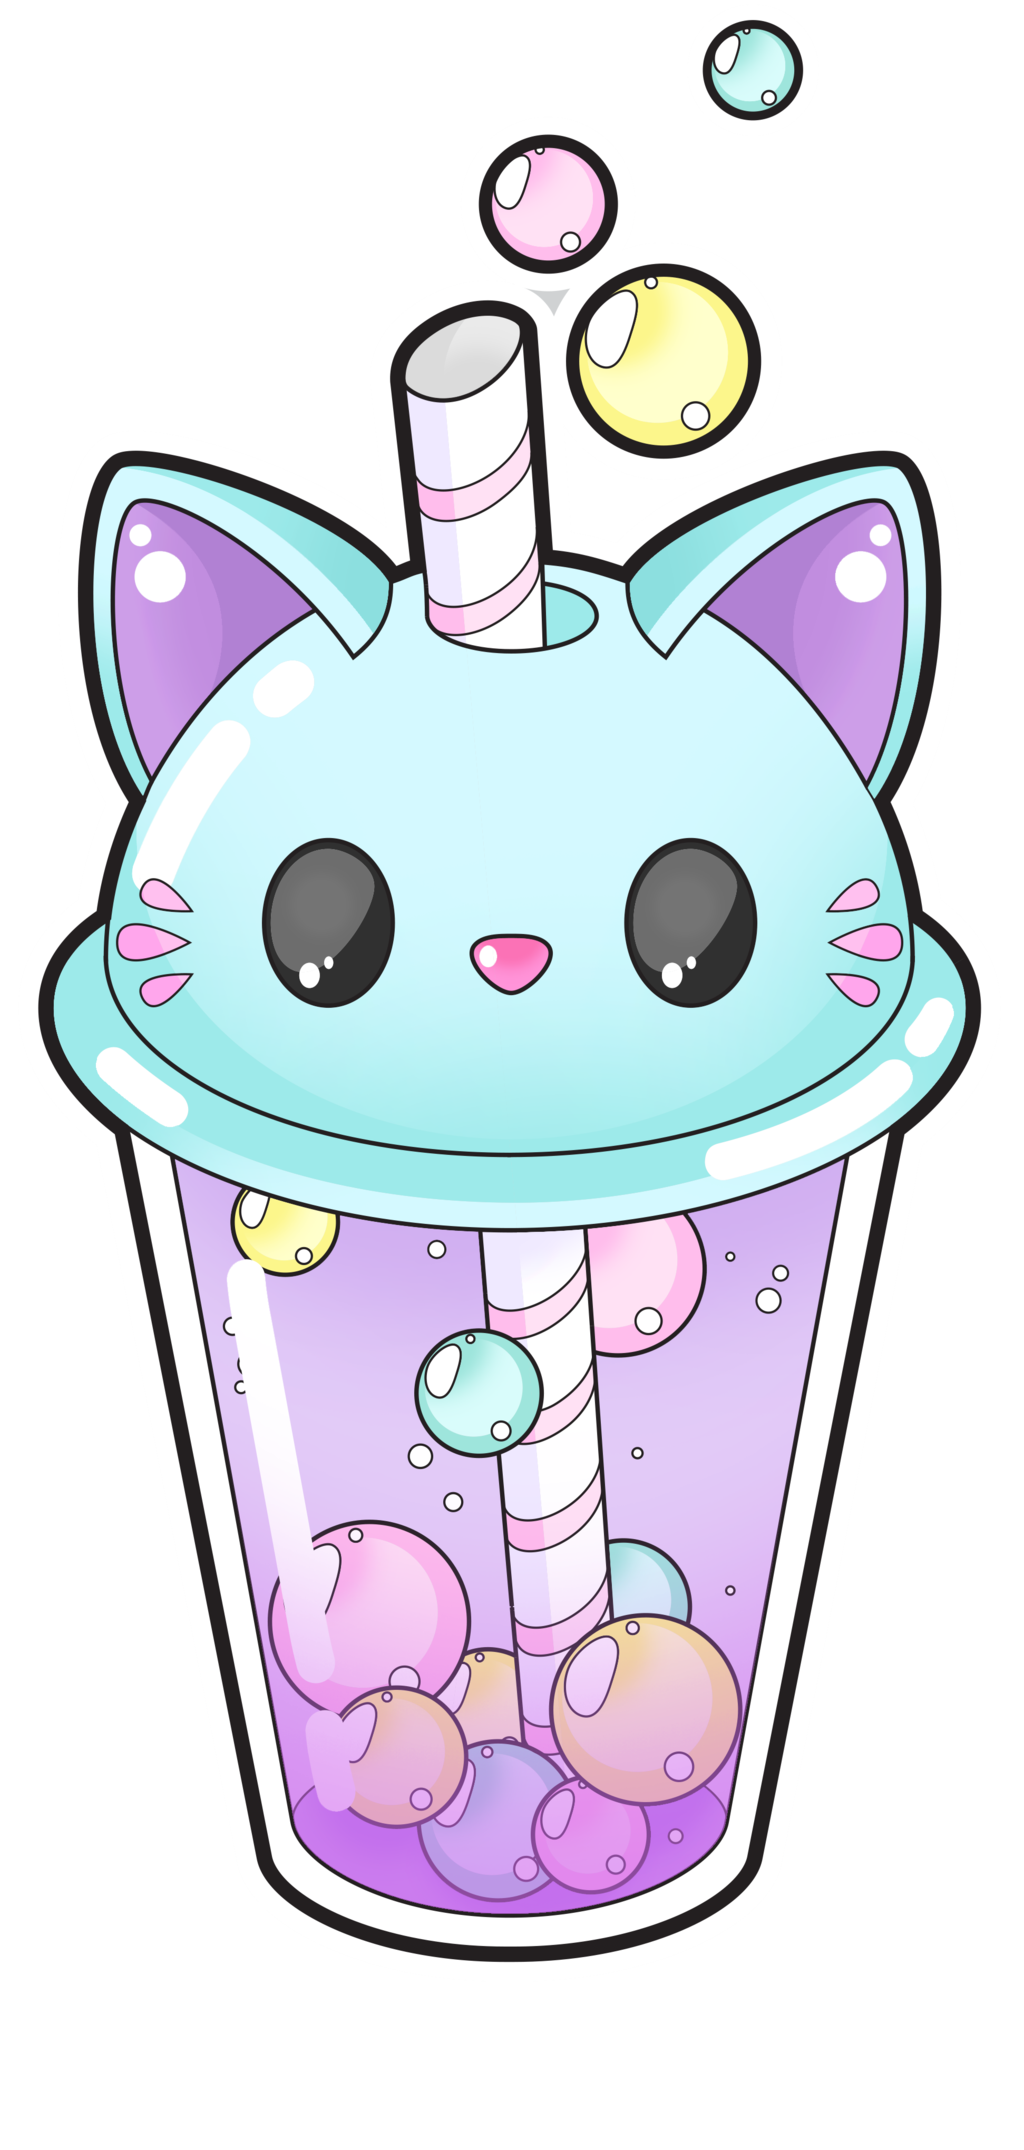 Narwhal clipart oblyvian. Cute cat bubble tea